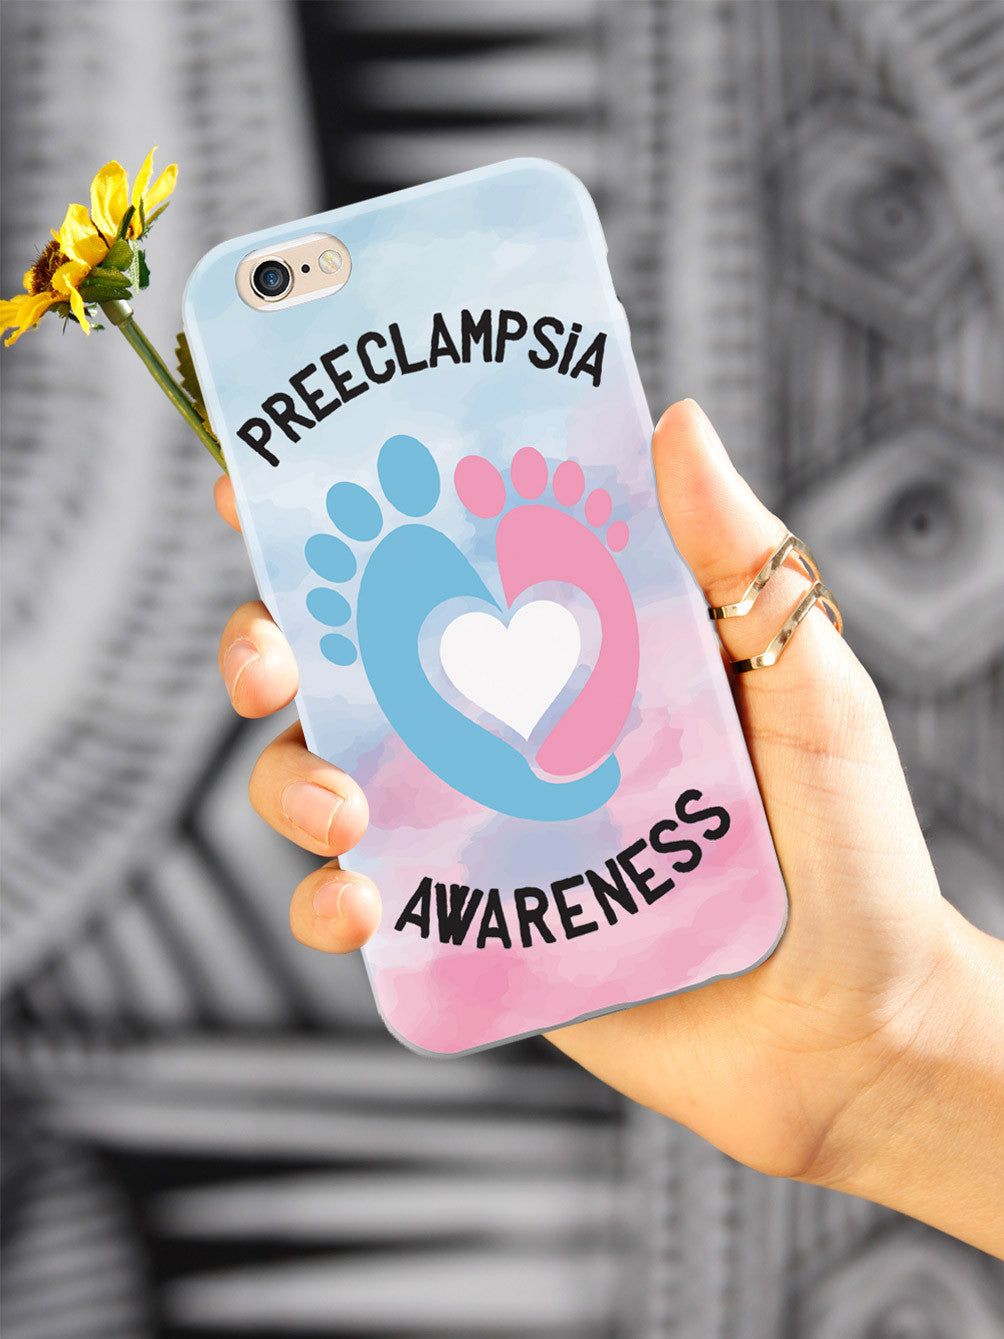 Preeclampsia Awareness - Footprints Case